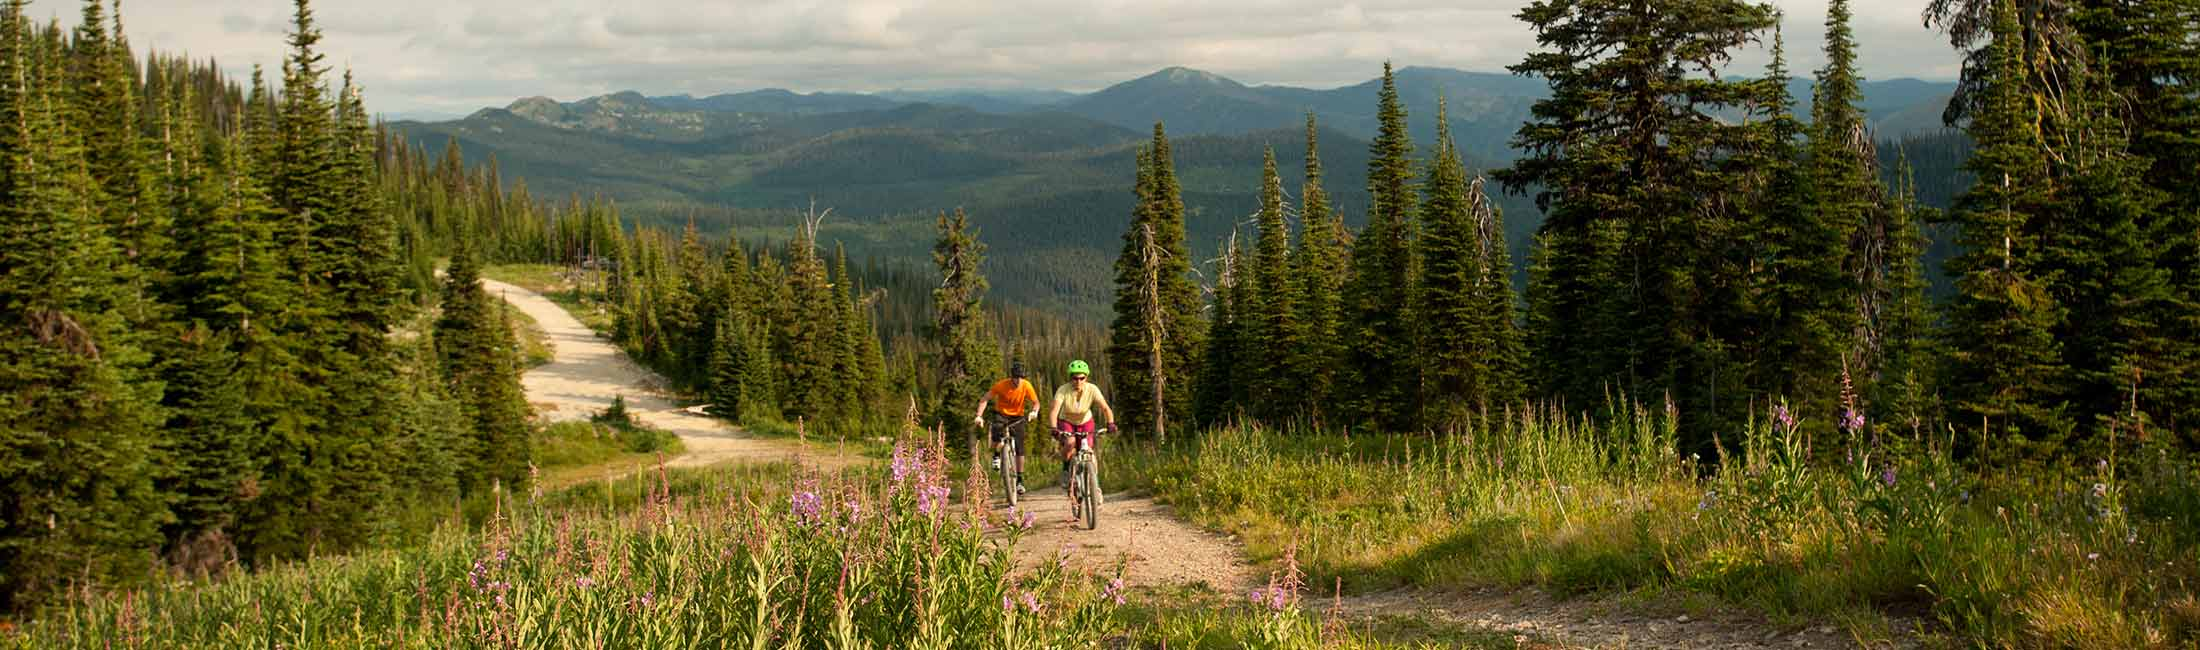 Fall is a great time to hike and bike the trails of Western Montana.